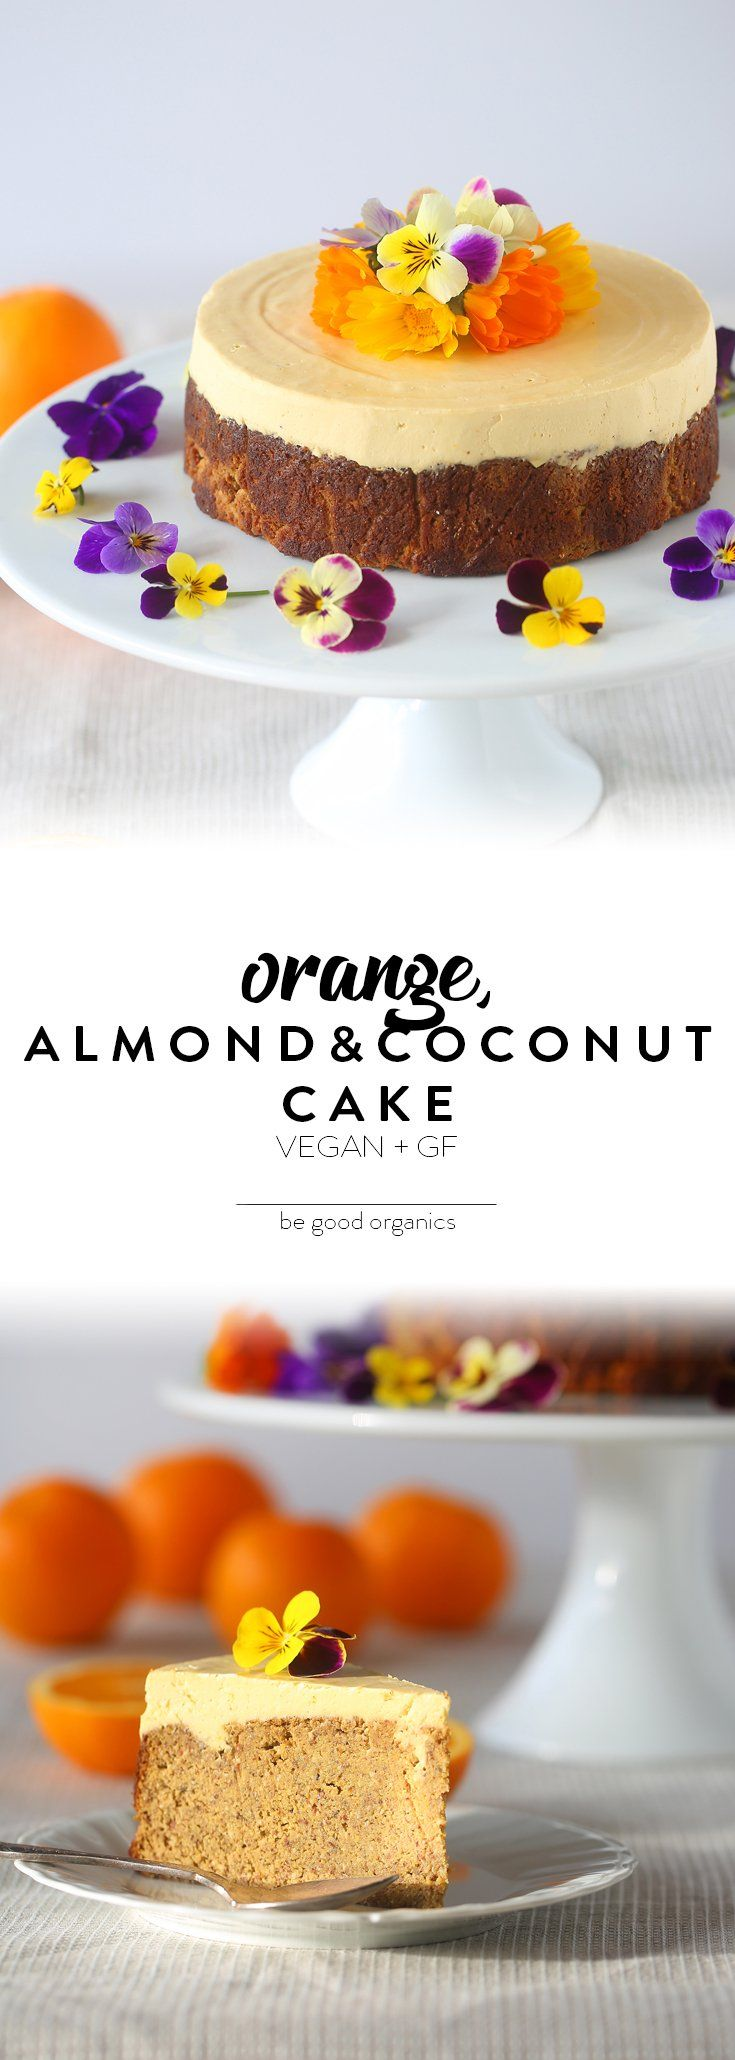 Orange, Almond & Coconut Cake - Be Good Organics. With cashews, coconut cream and coconut nectar.